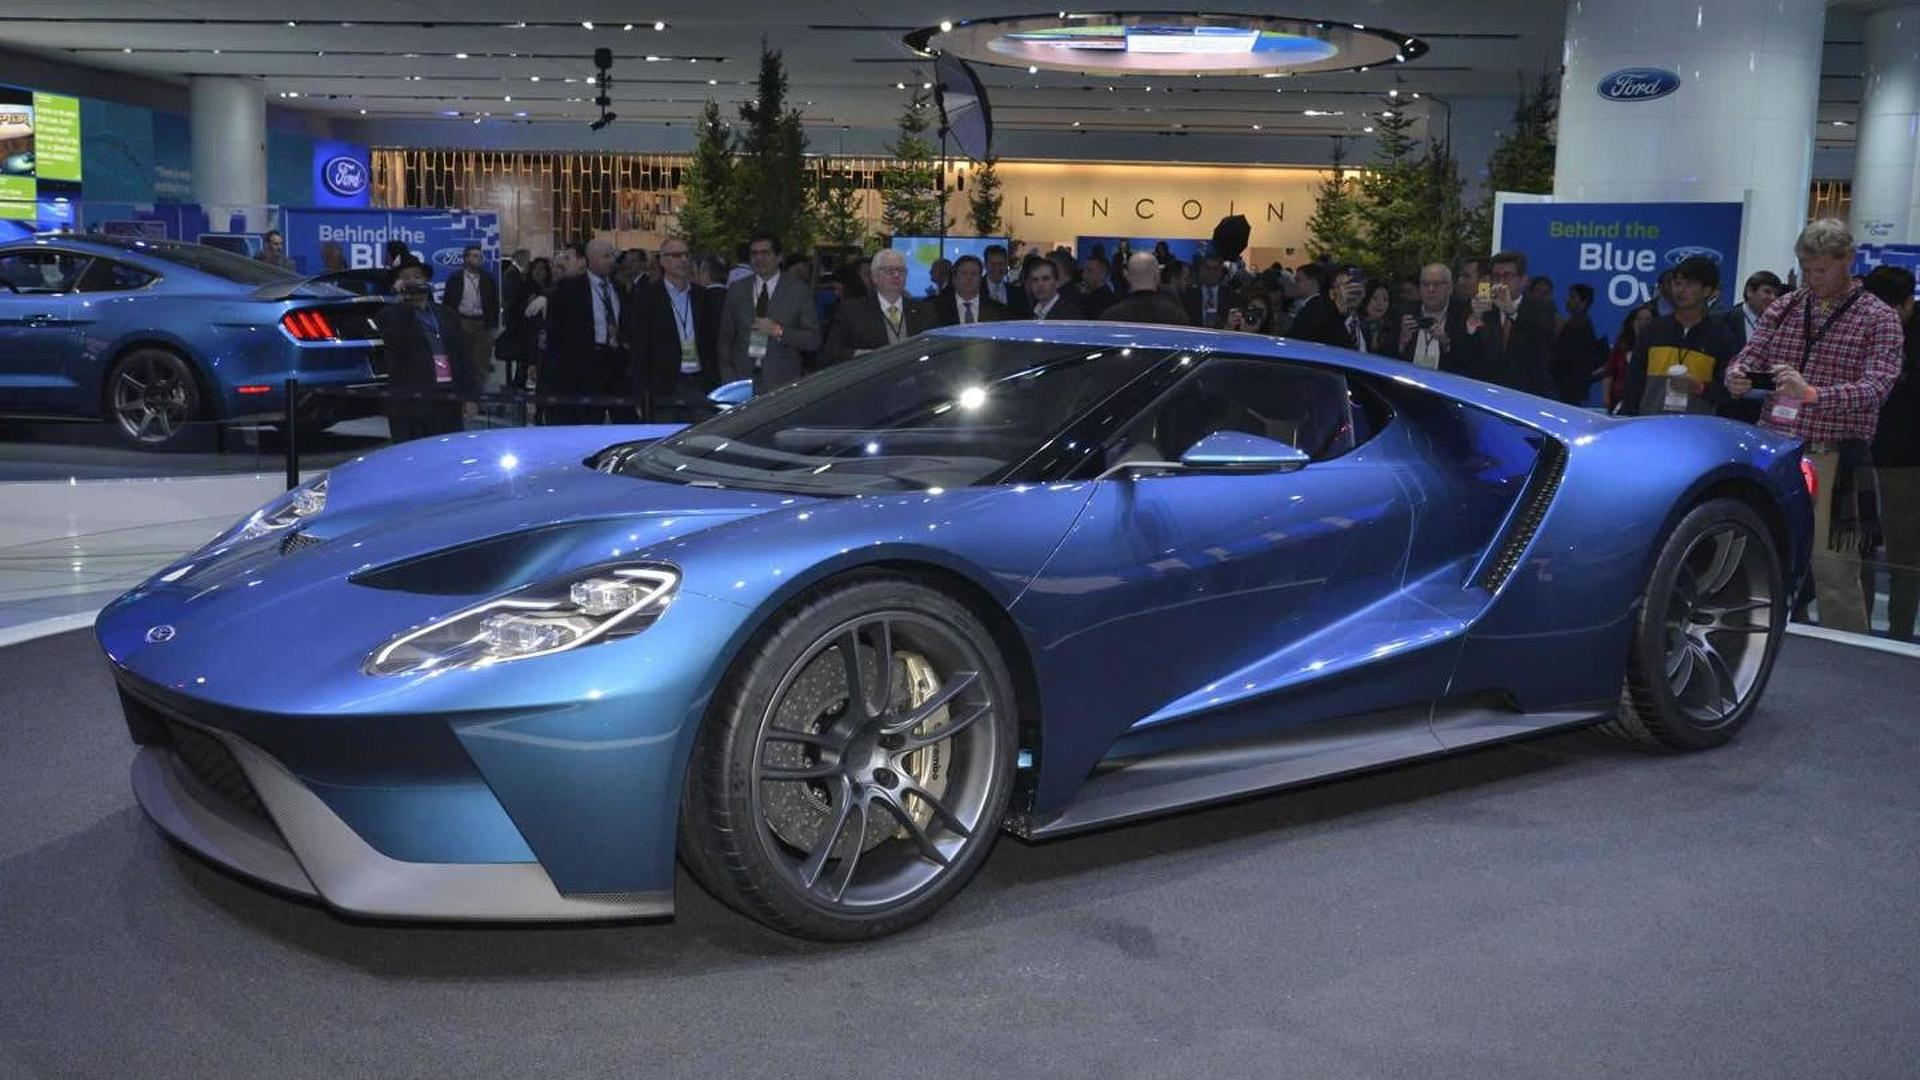 Ford Gt Breaks Cover With 600 Bhp Twin Turbo V6 99 Honda Civic Engine Fuse Box Under